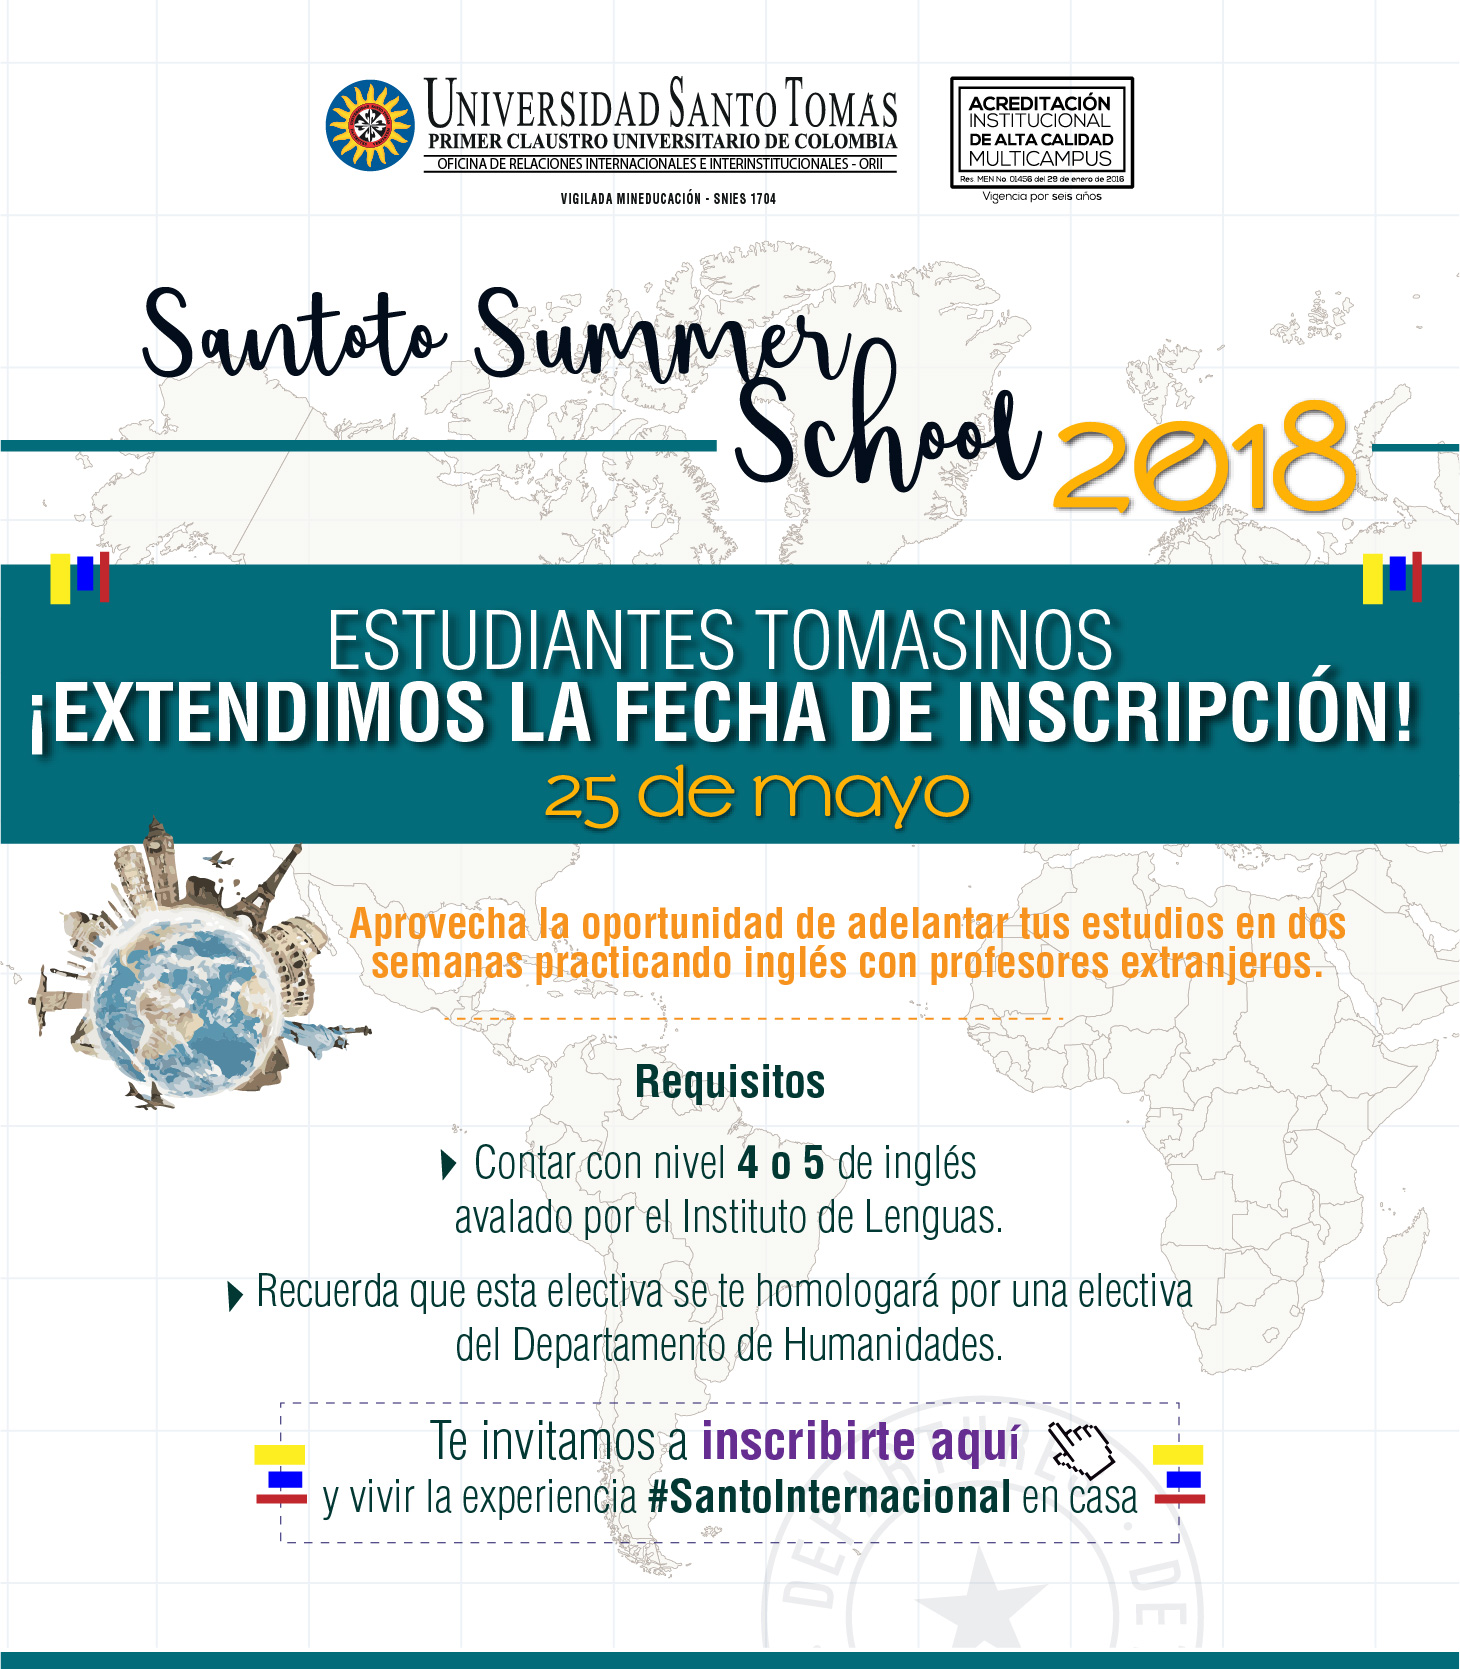 ST042 2018 Infografías Summer School ORII4 REQUISITOS Mailing copia 4